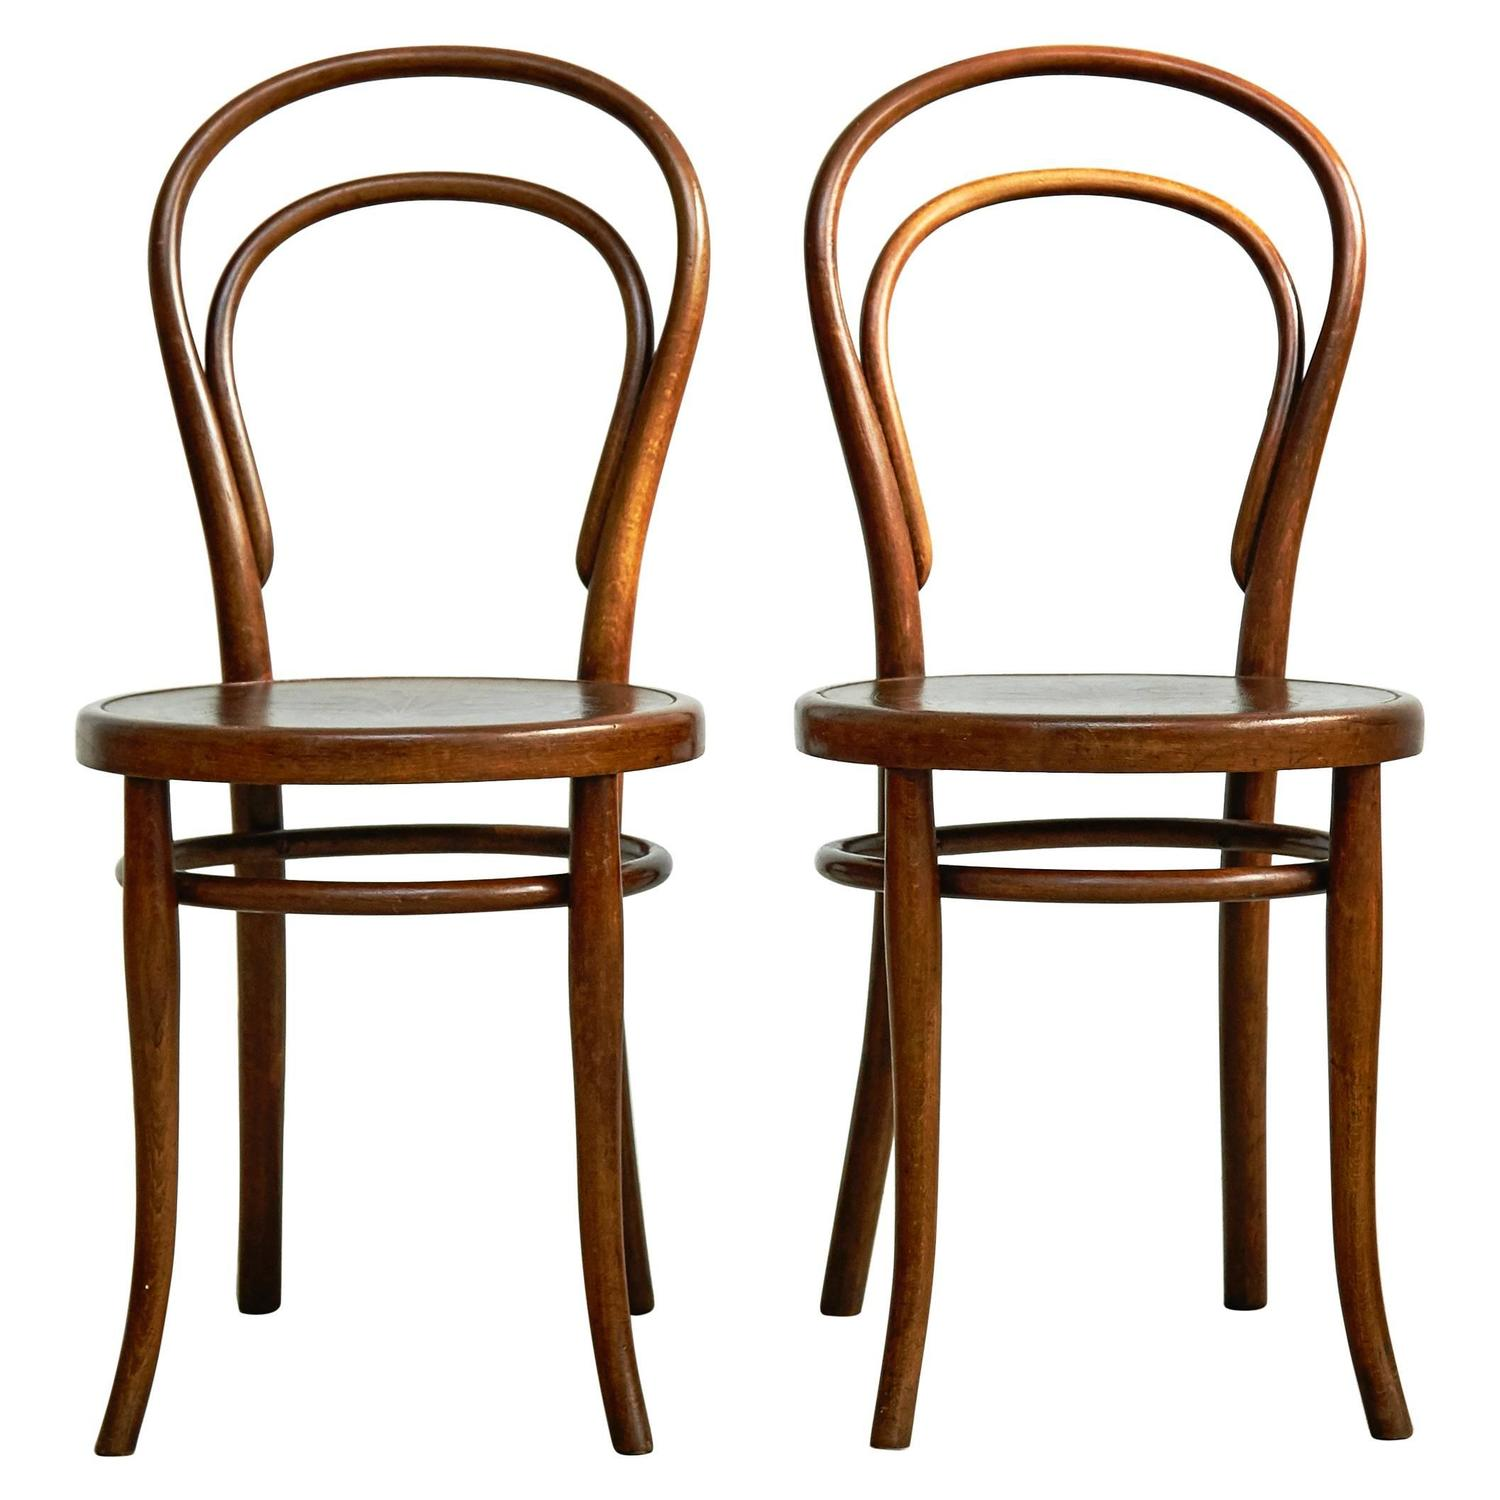 pair of chairs by august thonet for thonet circa 1900 for sale at 1stdibs. Black Bedroom Furniture Sets. Home Design Ideas